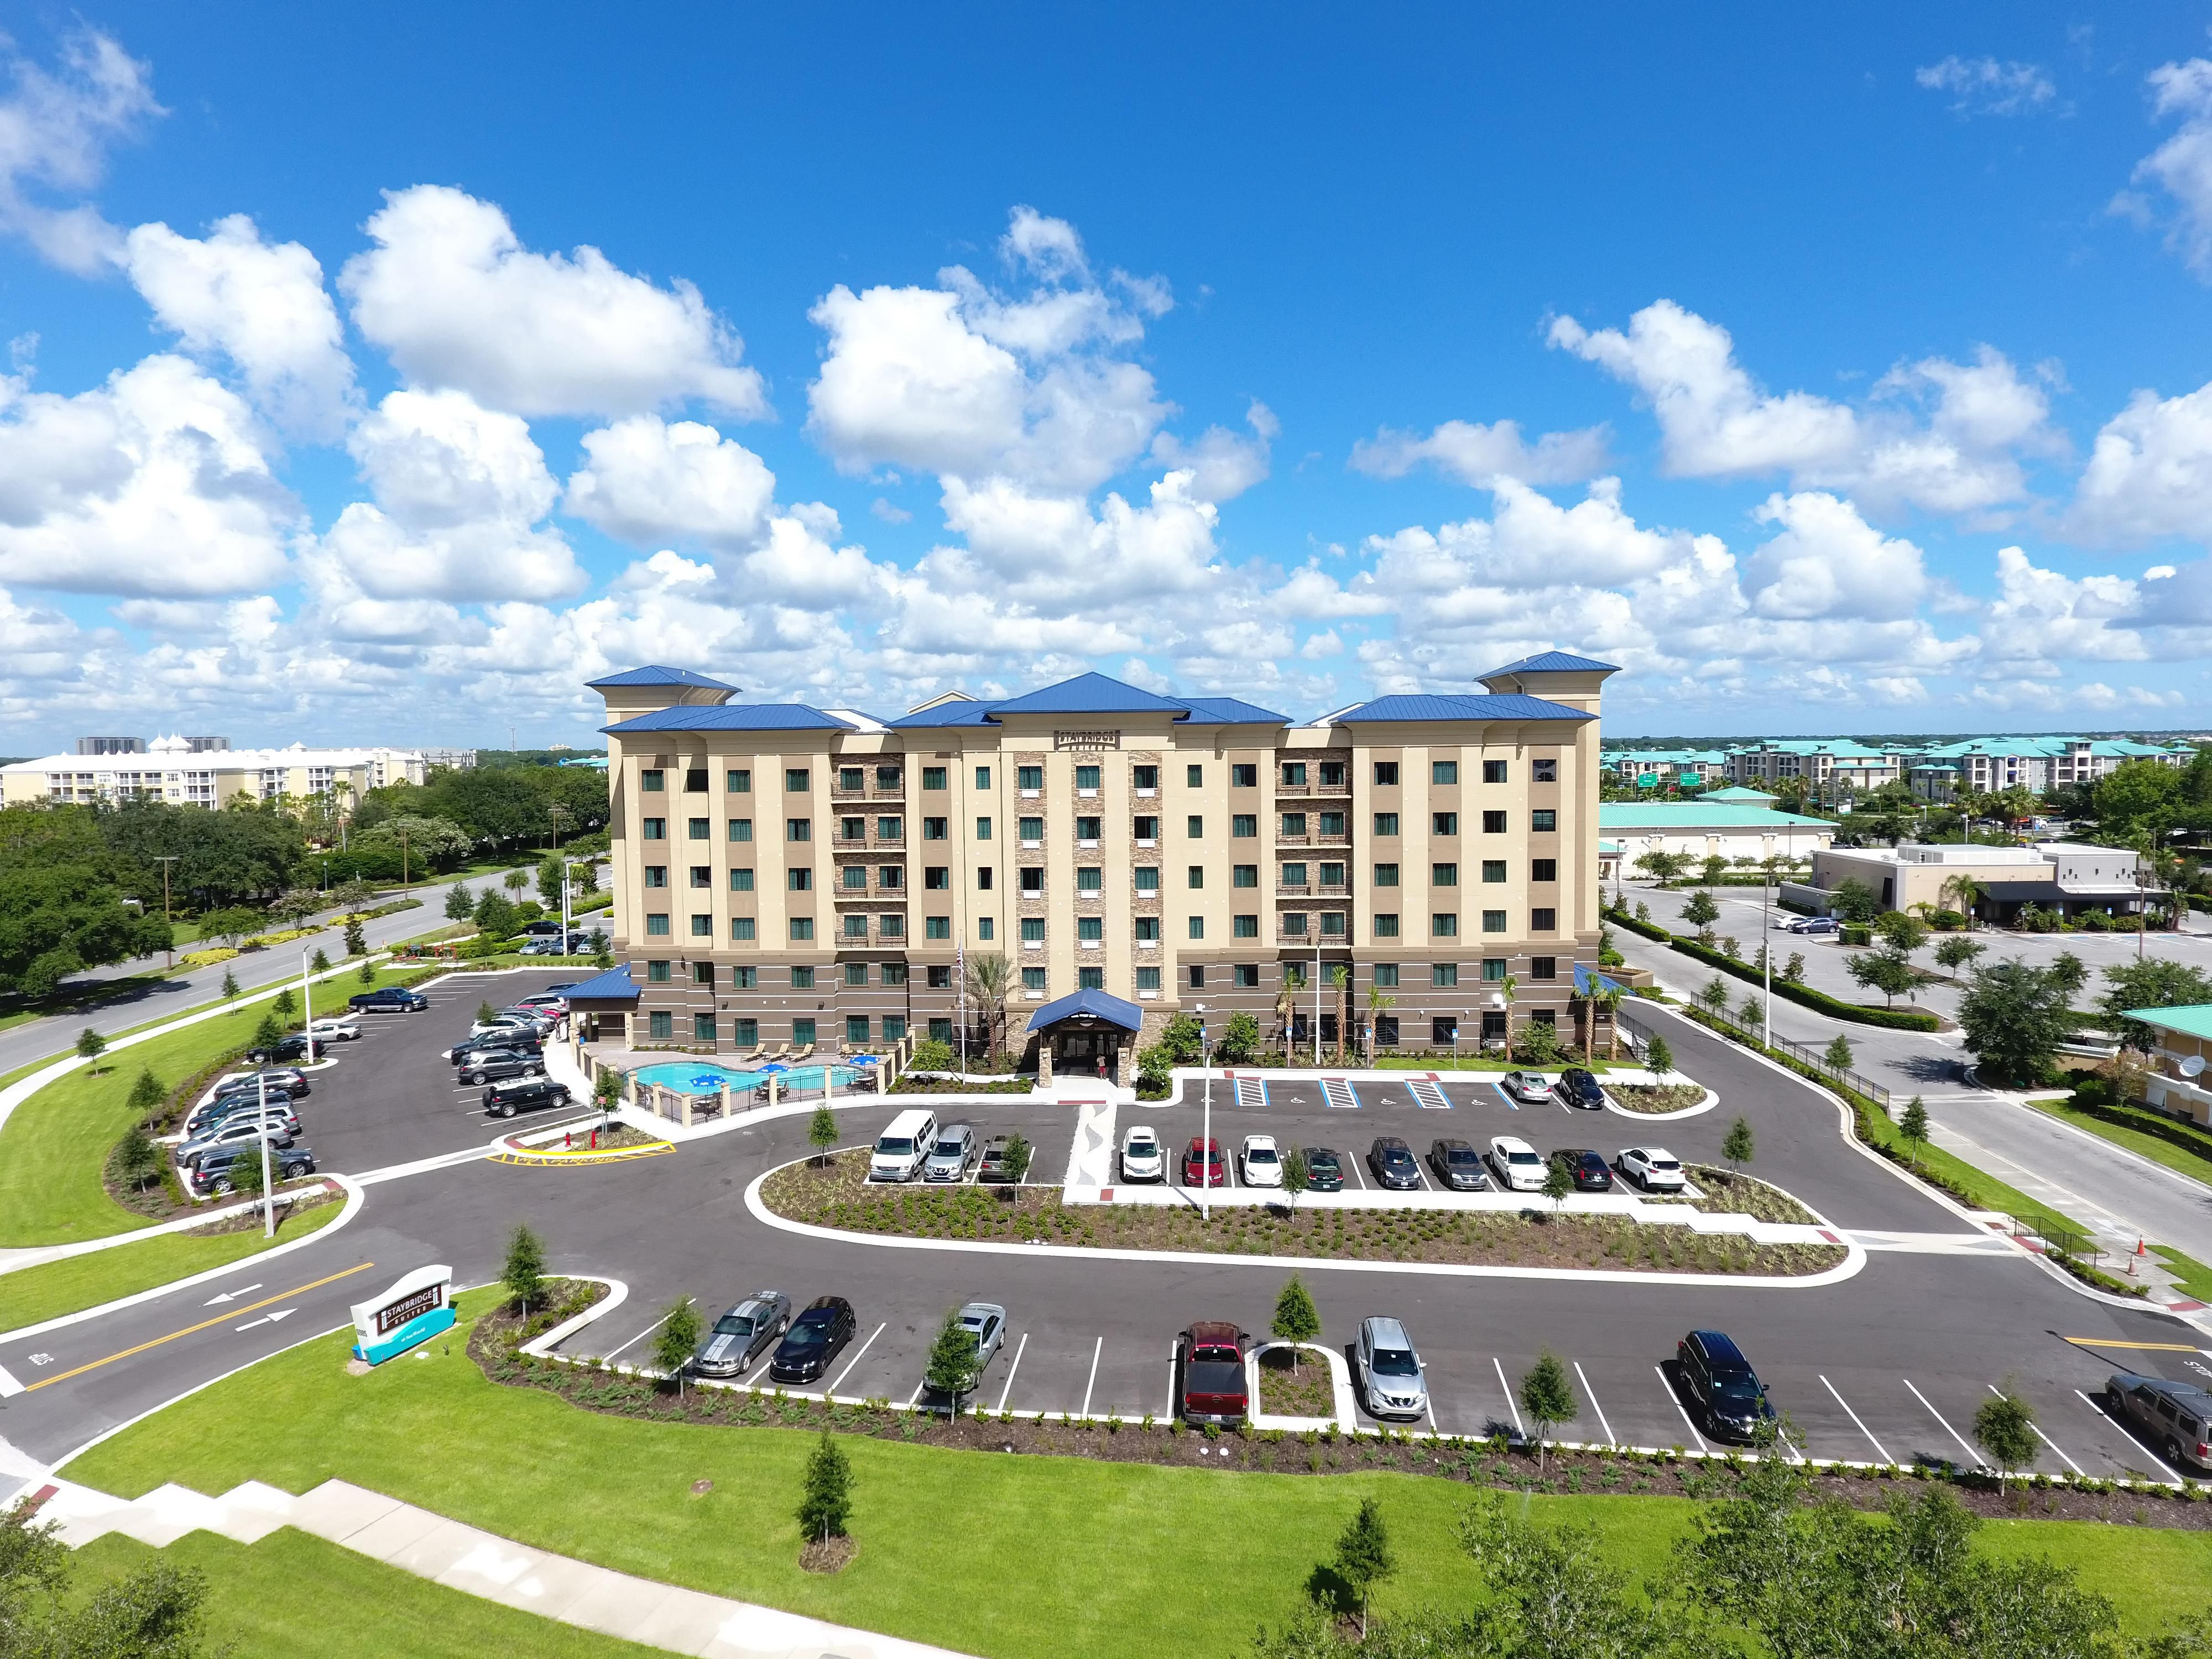 Orlando Hotels Staybridge Suites Theme Parks Extended Stay Hotel In United States